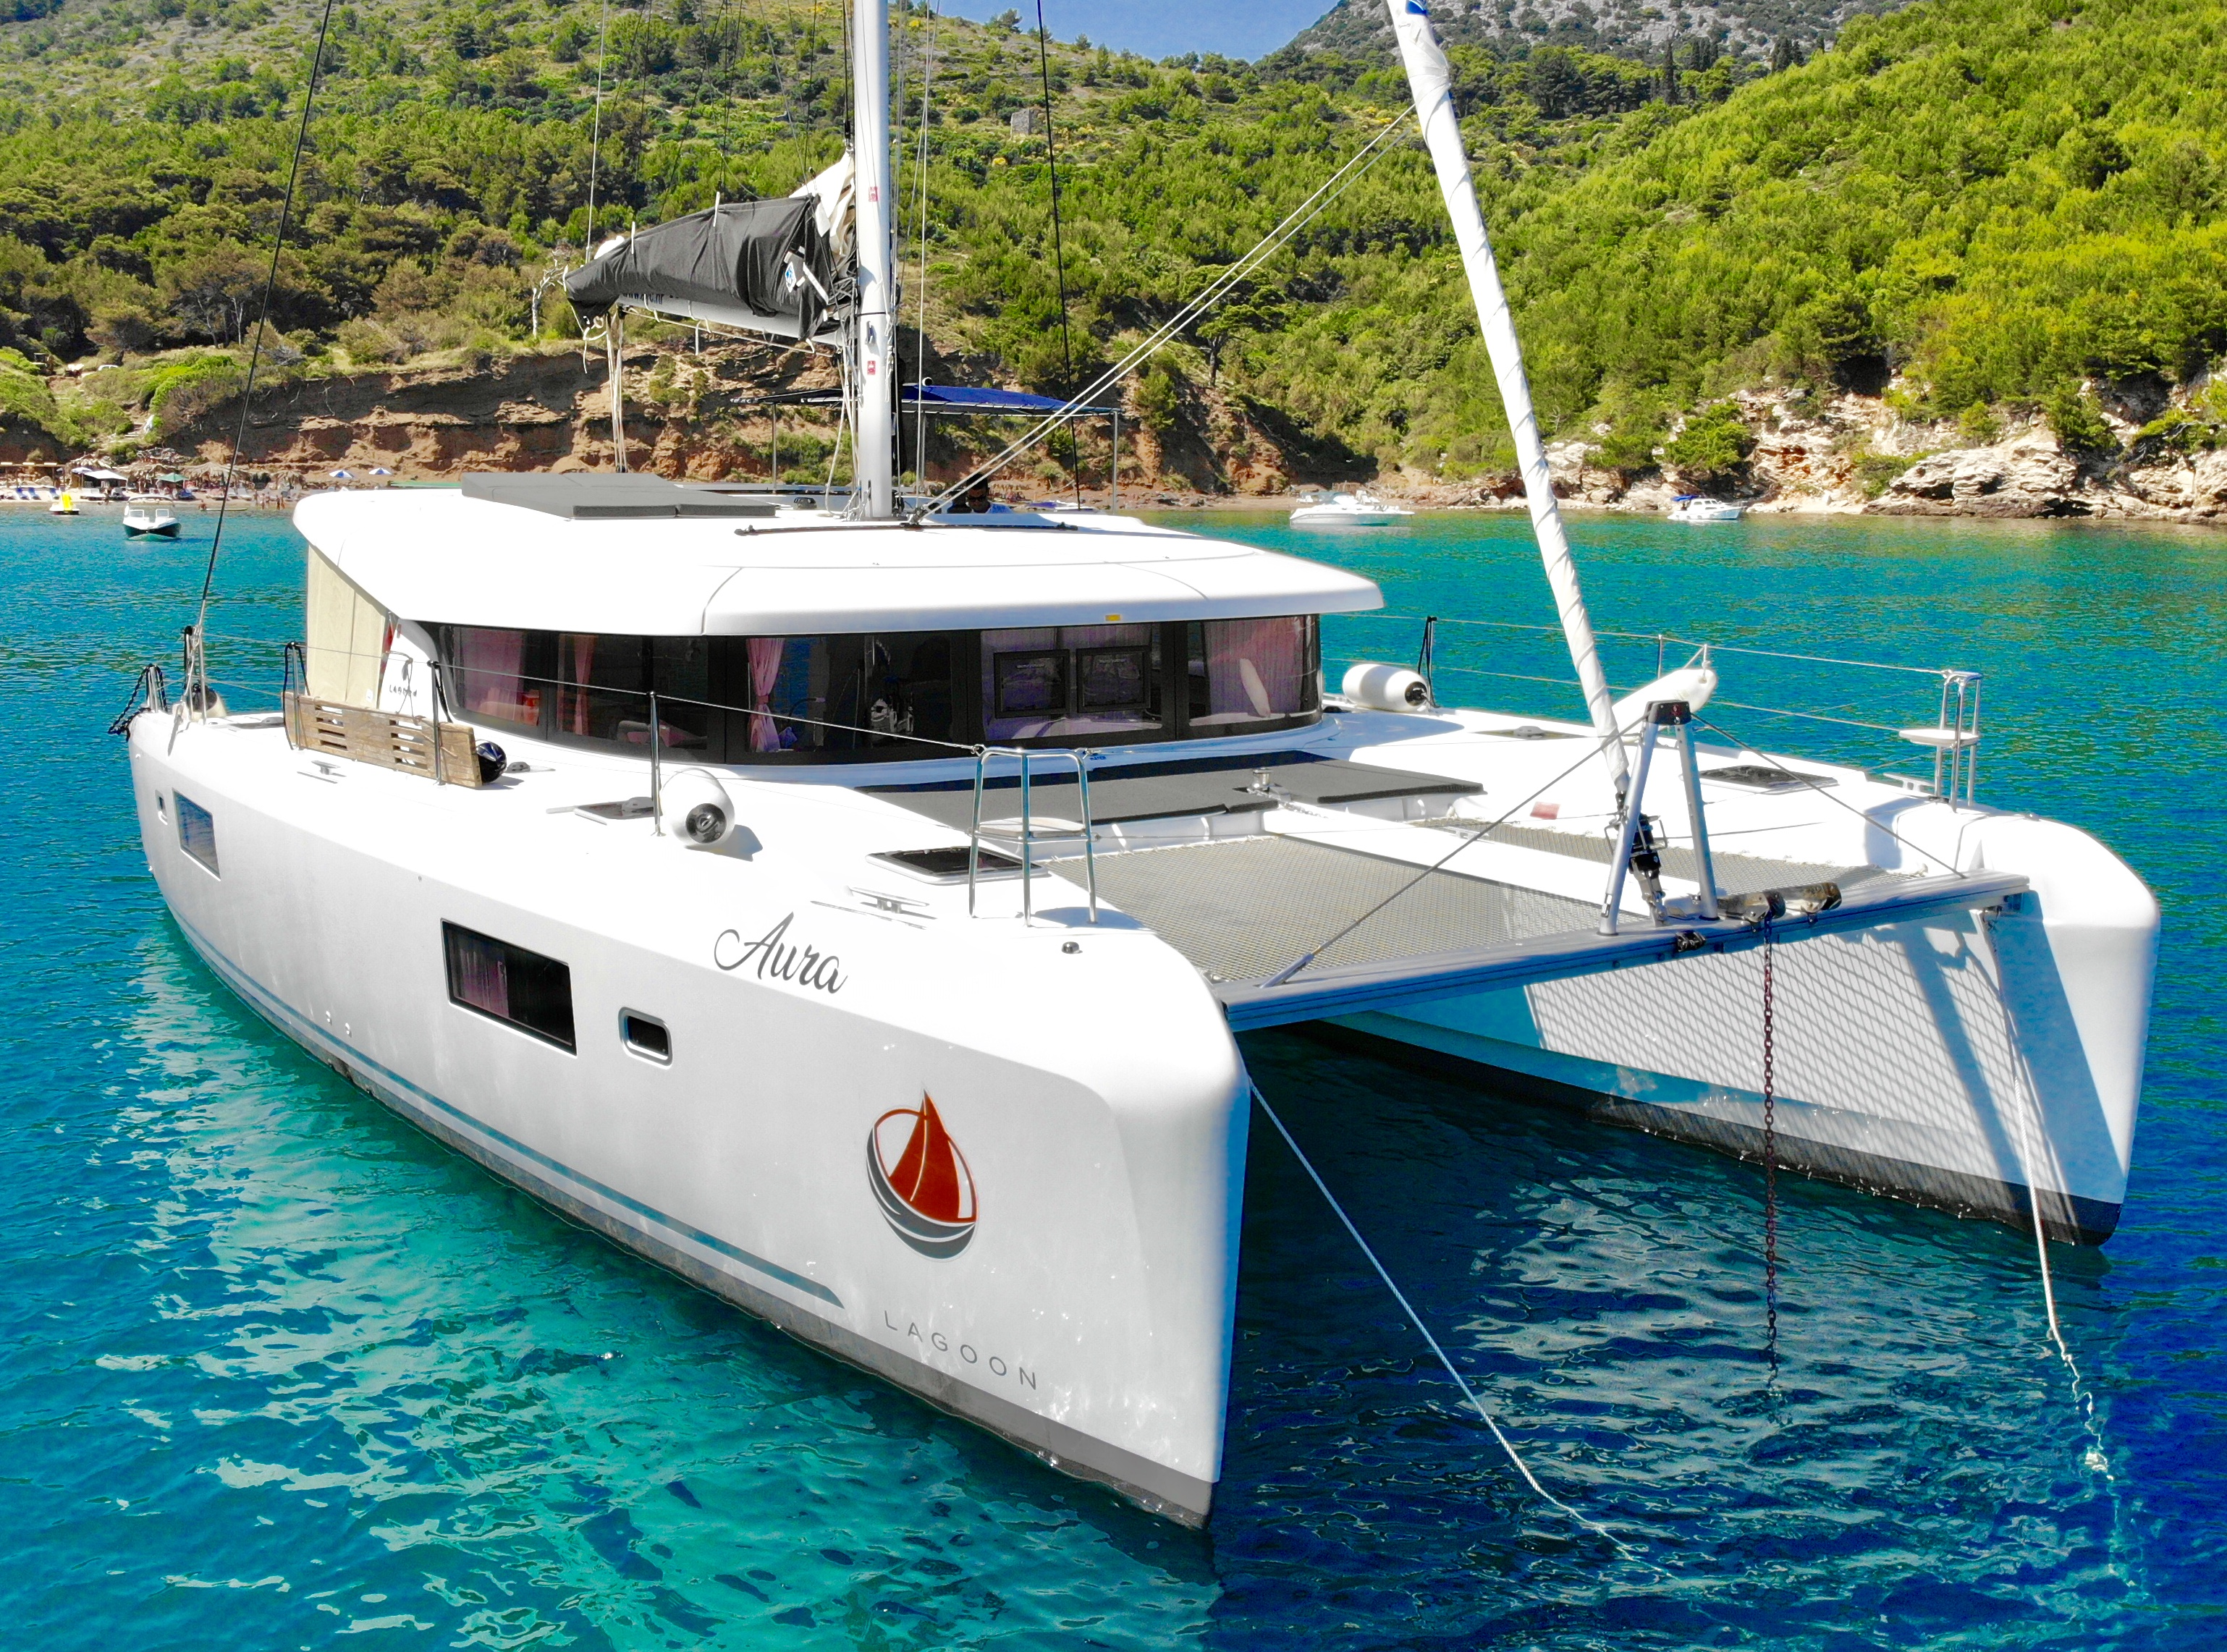 Lagoon 42 (Aura (skippered))  - 15